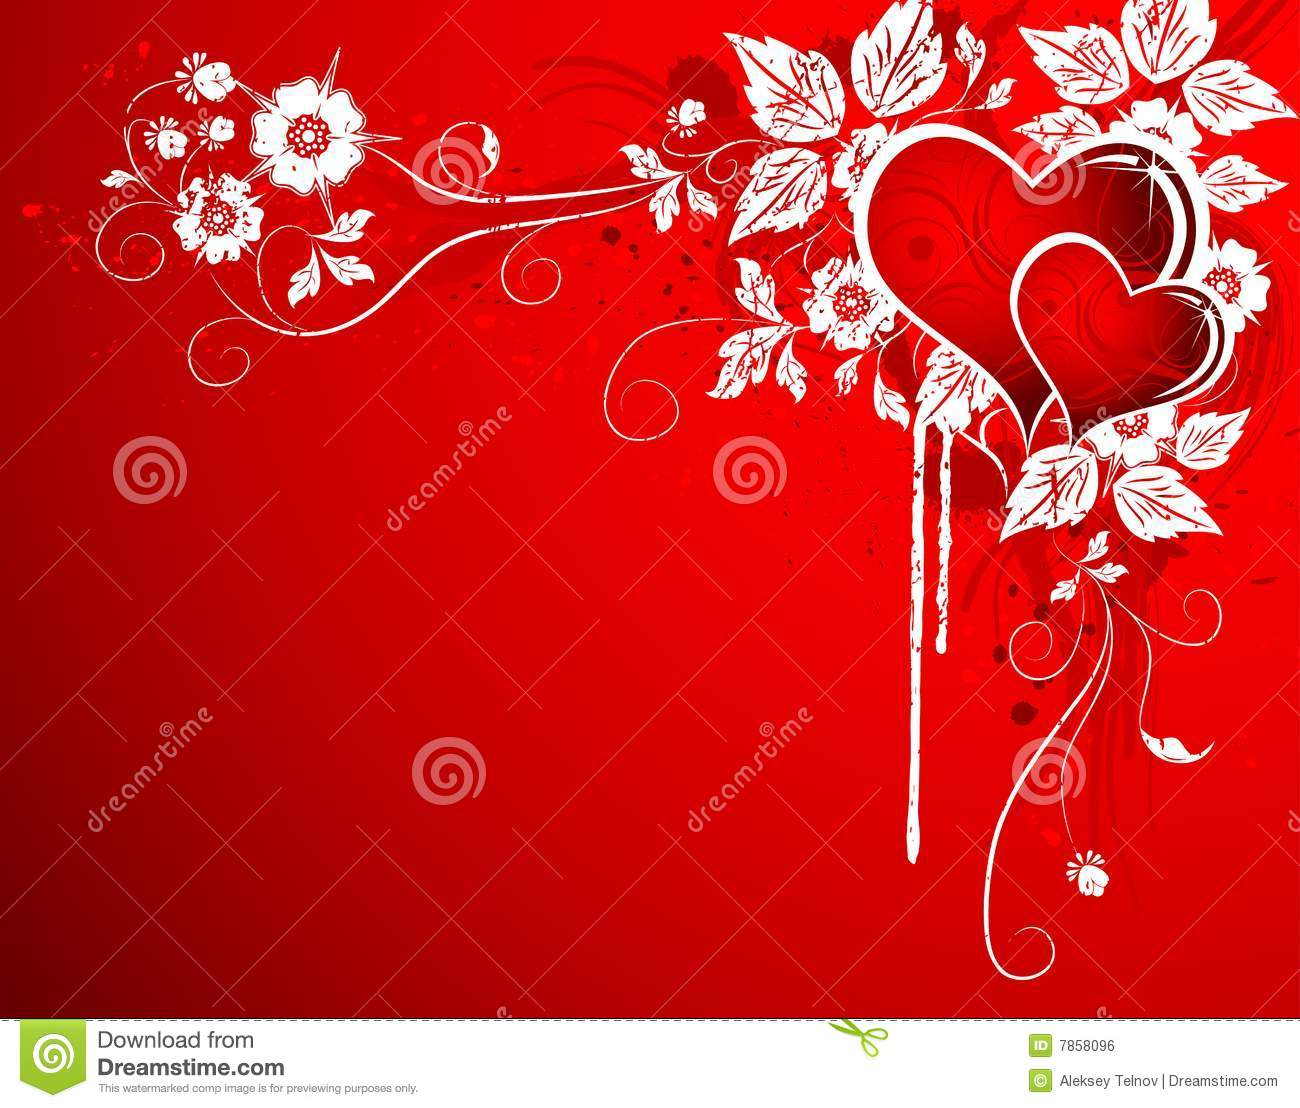 valentines day background clipart - photo #10